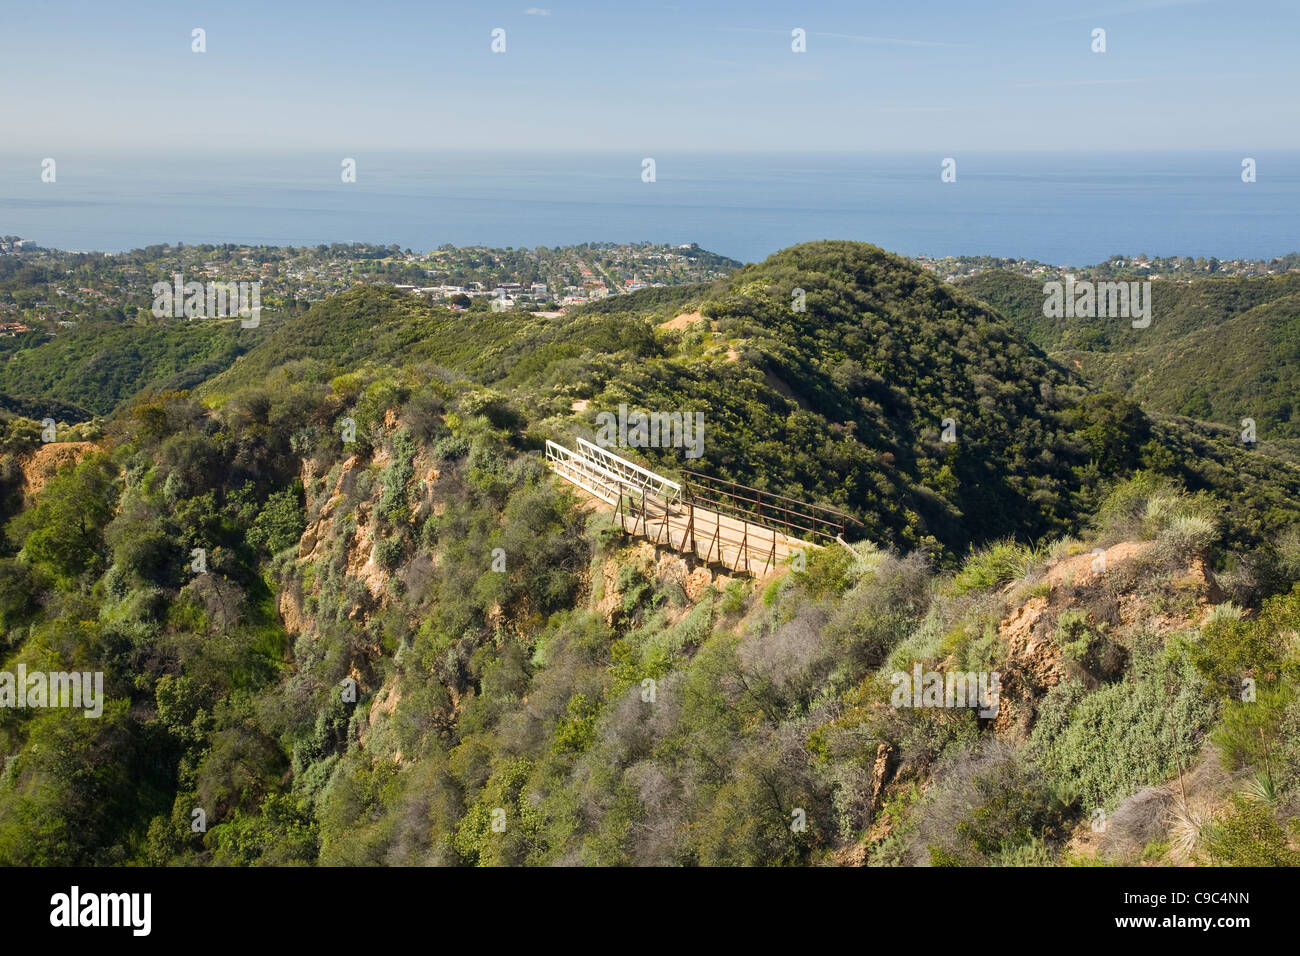 The Pacific Ocean and Santa Monica from the Backbone Trail in the Topanga State Park section of the Santa Monica - Stock Image